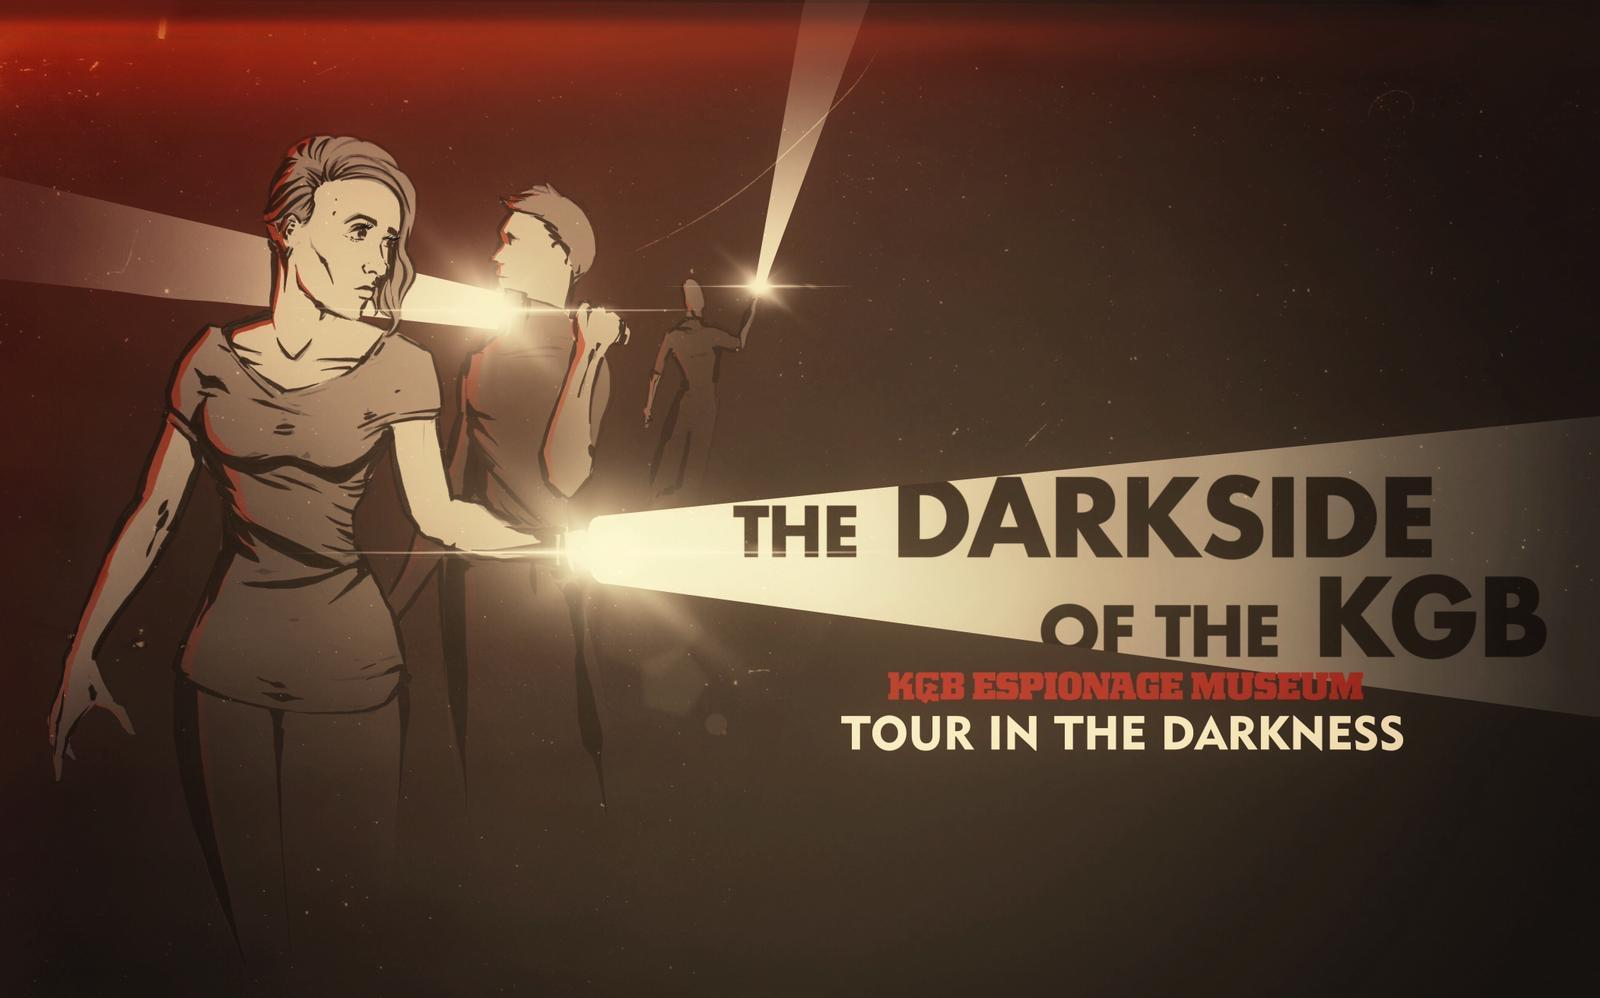 Exclusive tour in the dark 'The Darkside of the KGB'